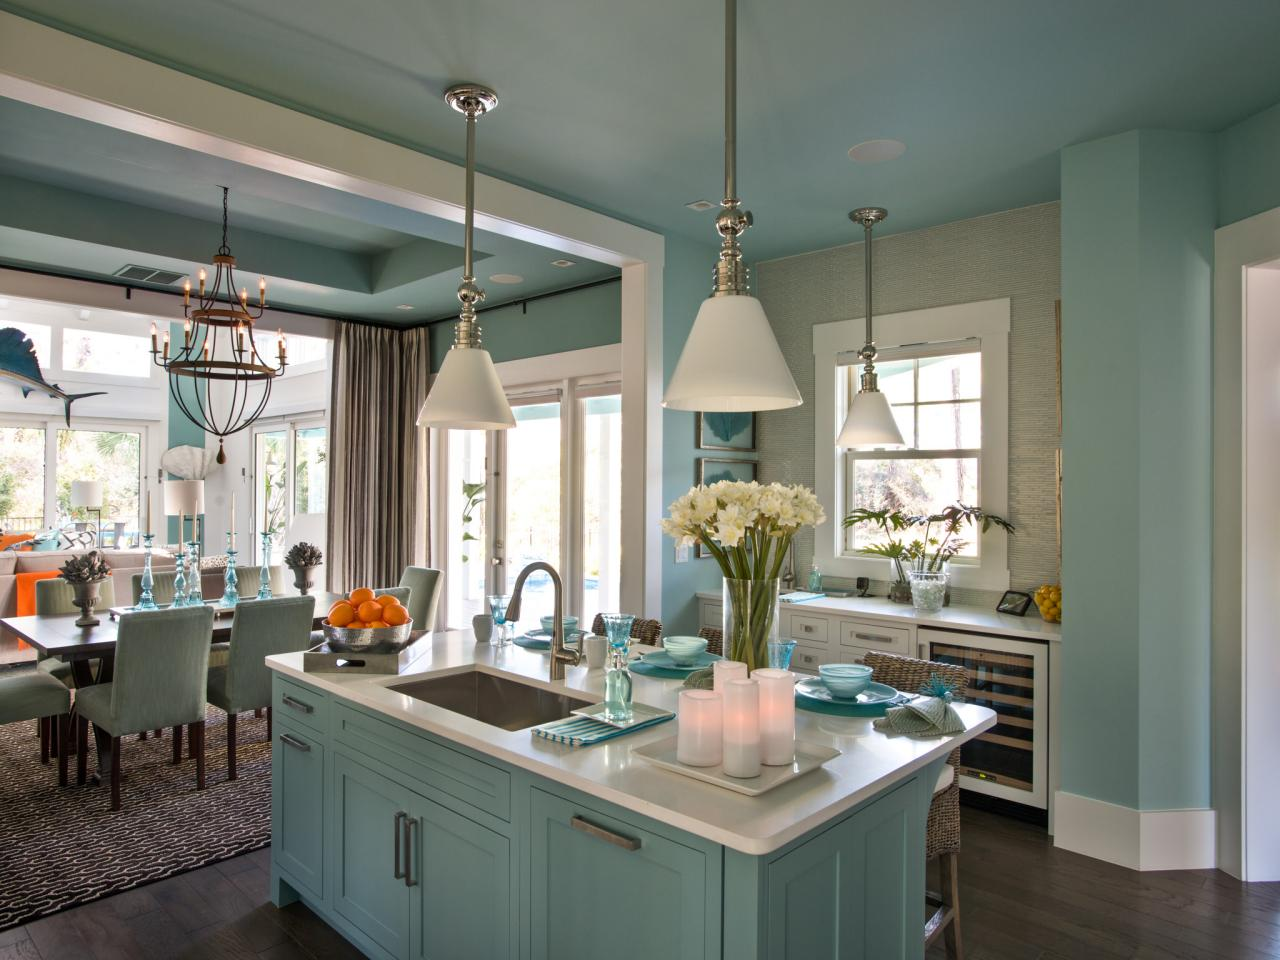 Coastal kitchen photos hgtv for Hgtv kitchens